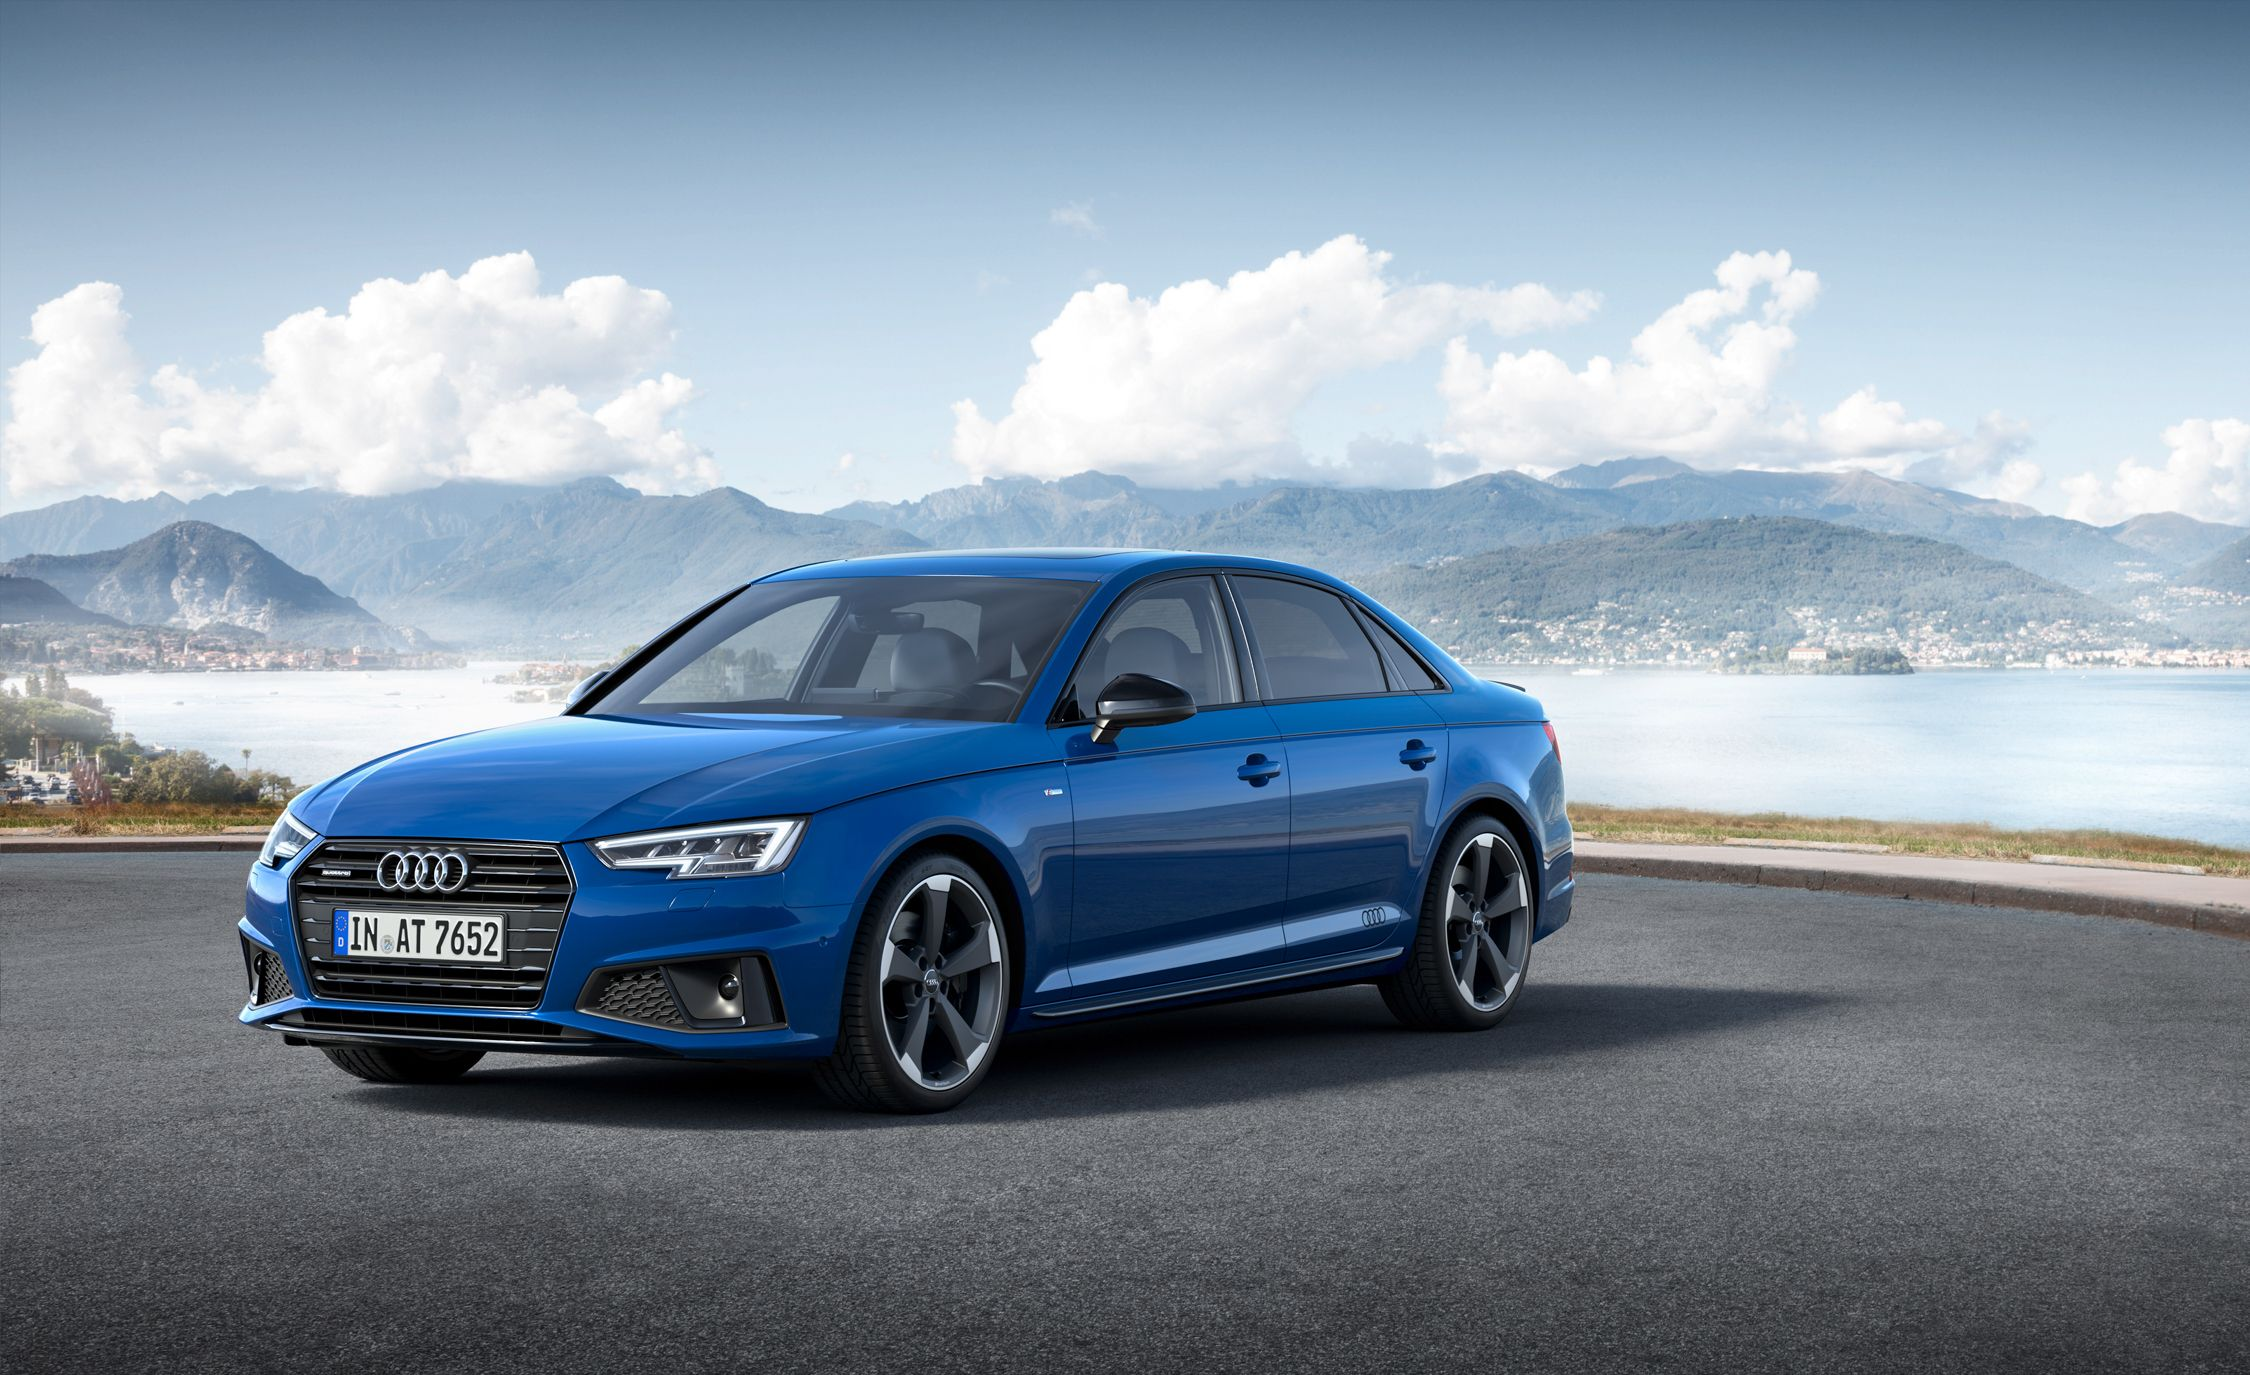 6. Audi A4 Like most Audis, the A4 sedan flies under the radar but is otherwise class-leading. The minimally styled four-door is handsome, has an extremely well-built cabin, is filled with advanced technologies, and is surprisingly enjoyable to drive.